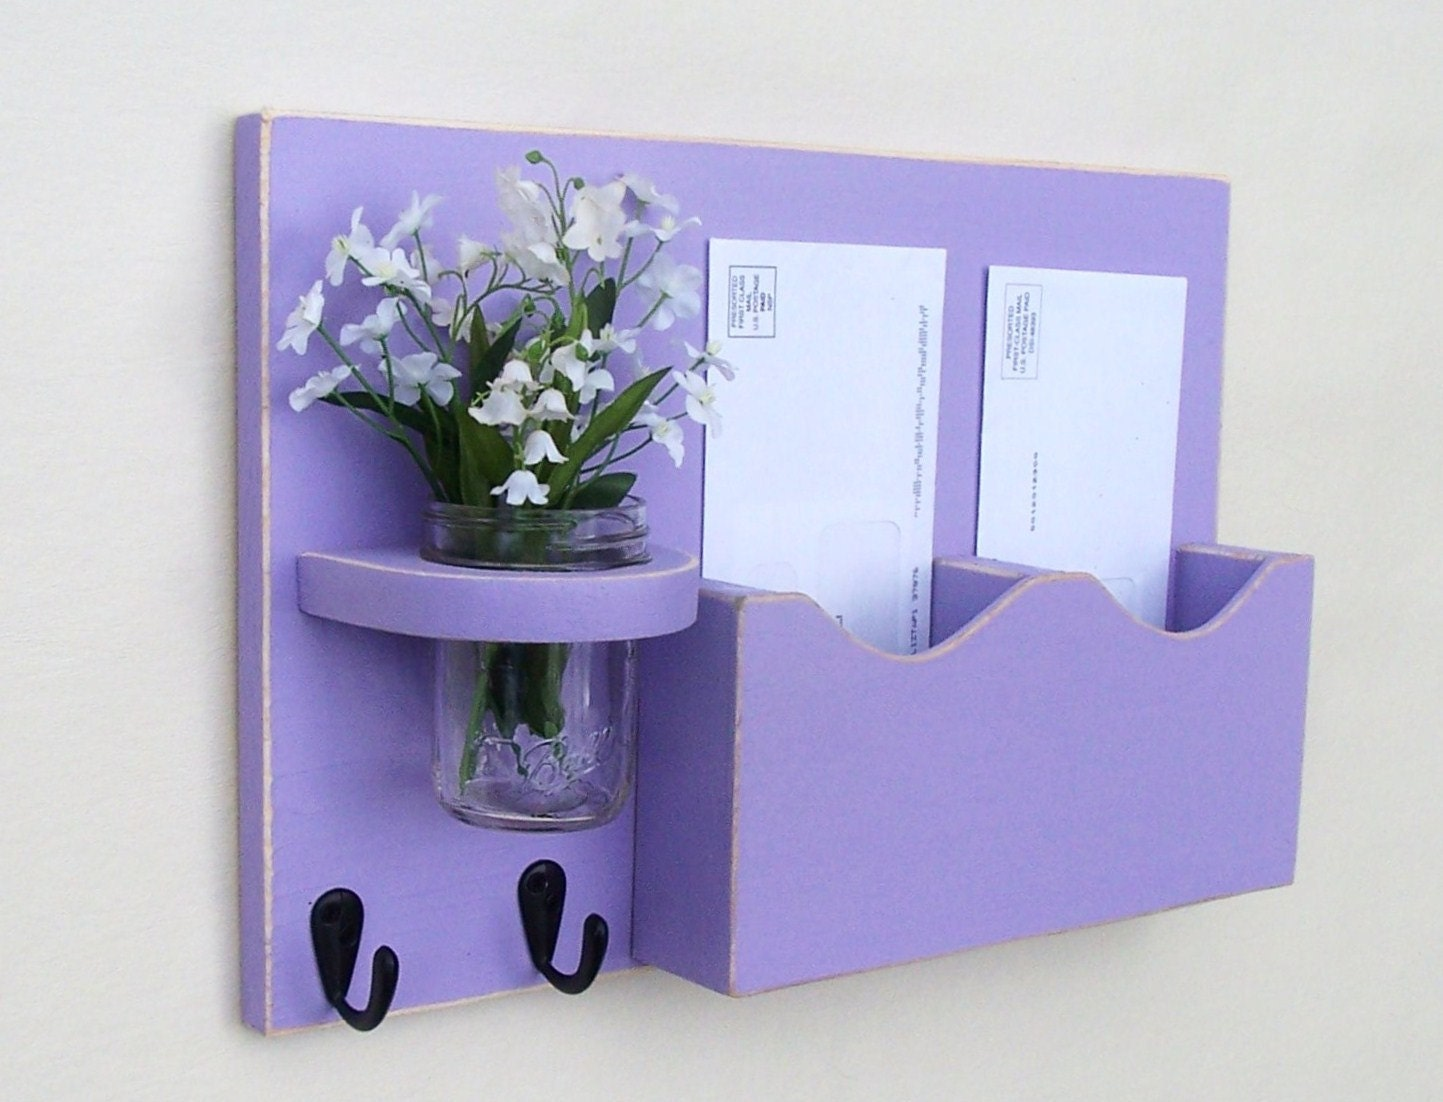 Mail Organizer - Mail Holder - Letter Holder - Key Hooks - Jar Vase - Organizer - Painted Distressed Wood